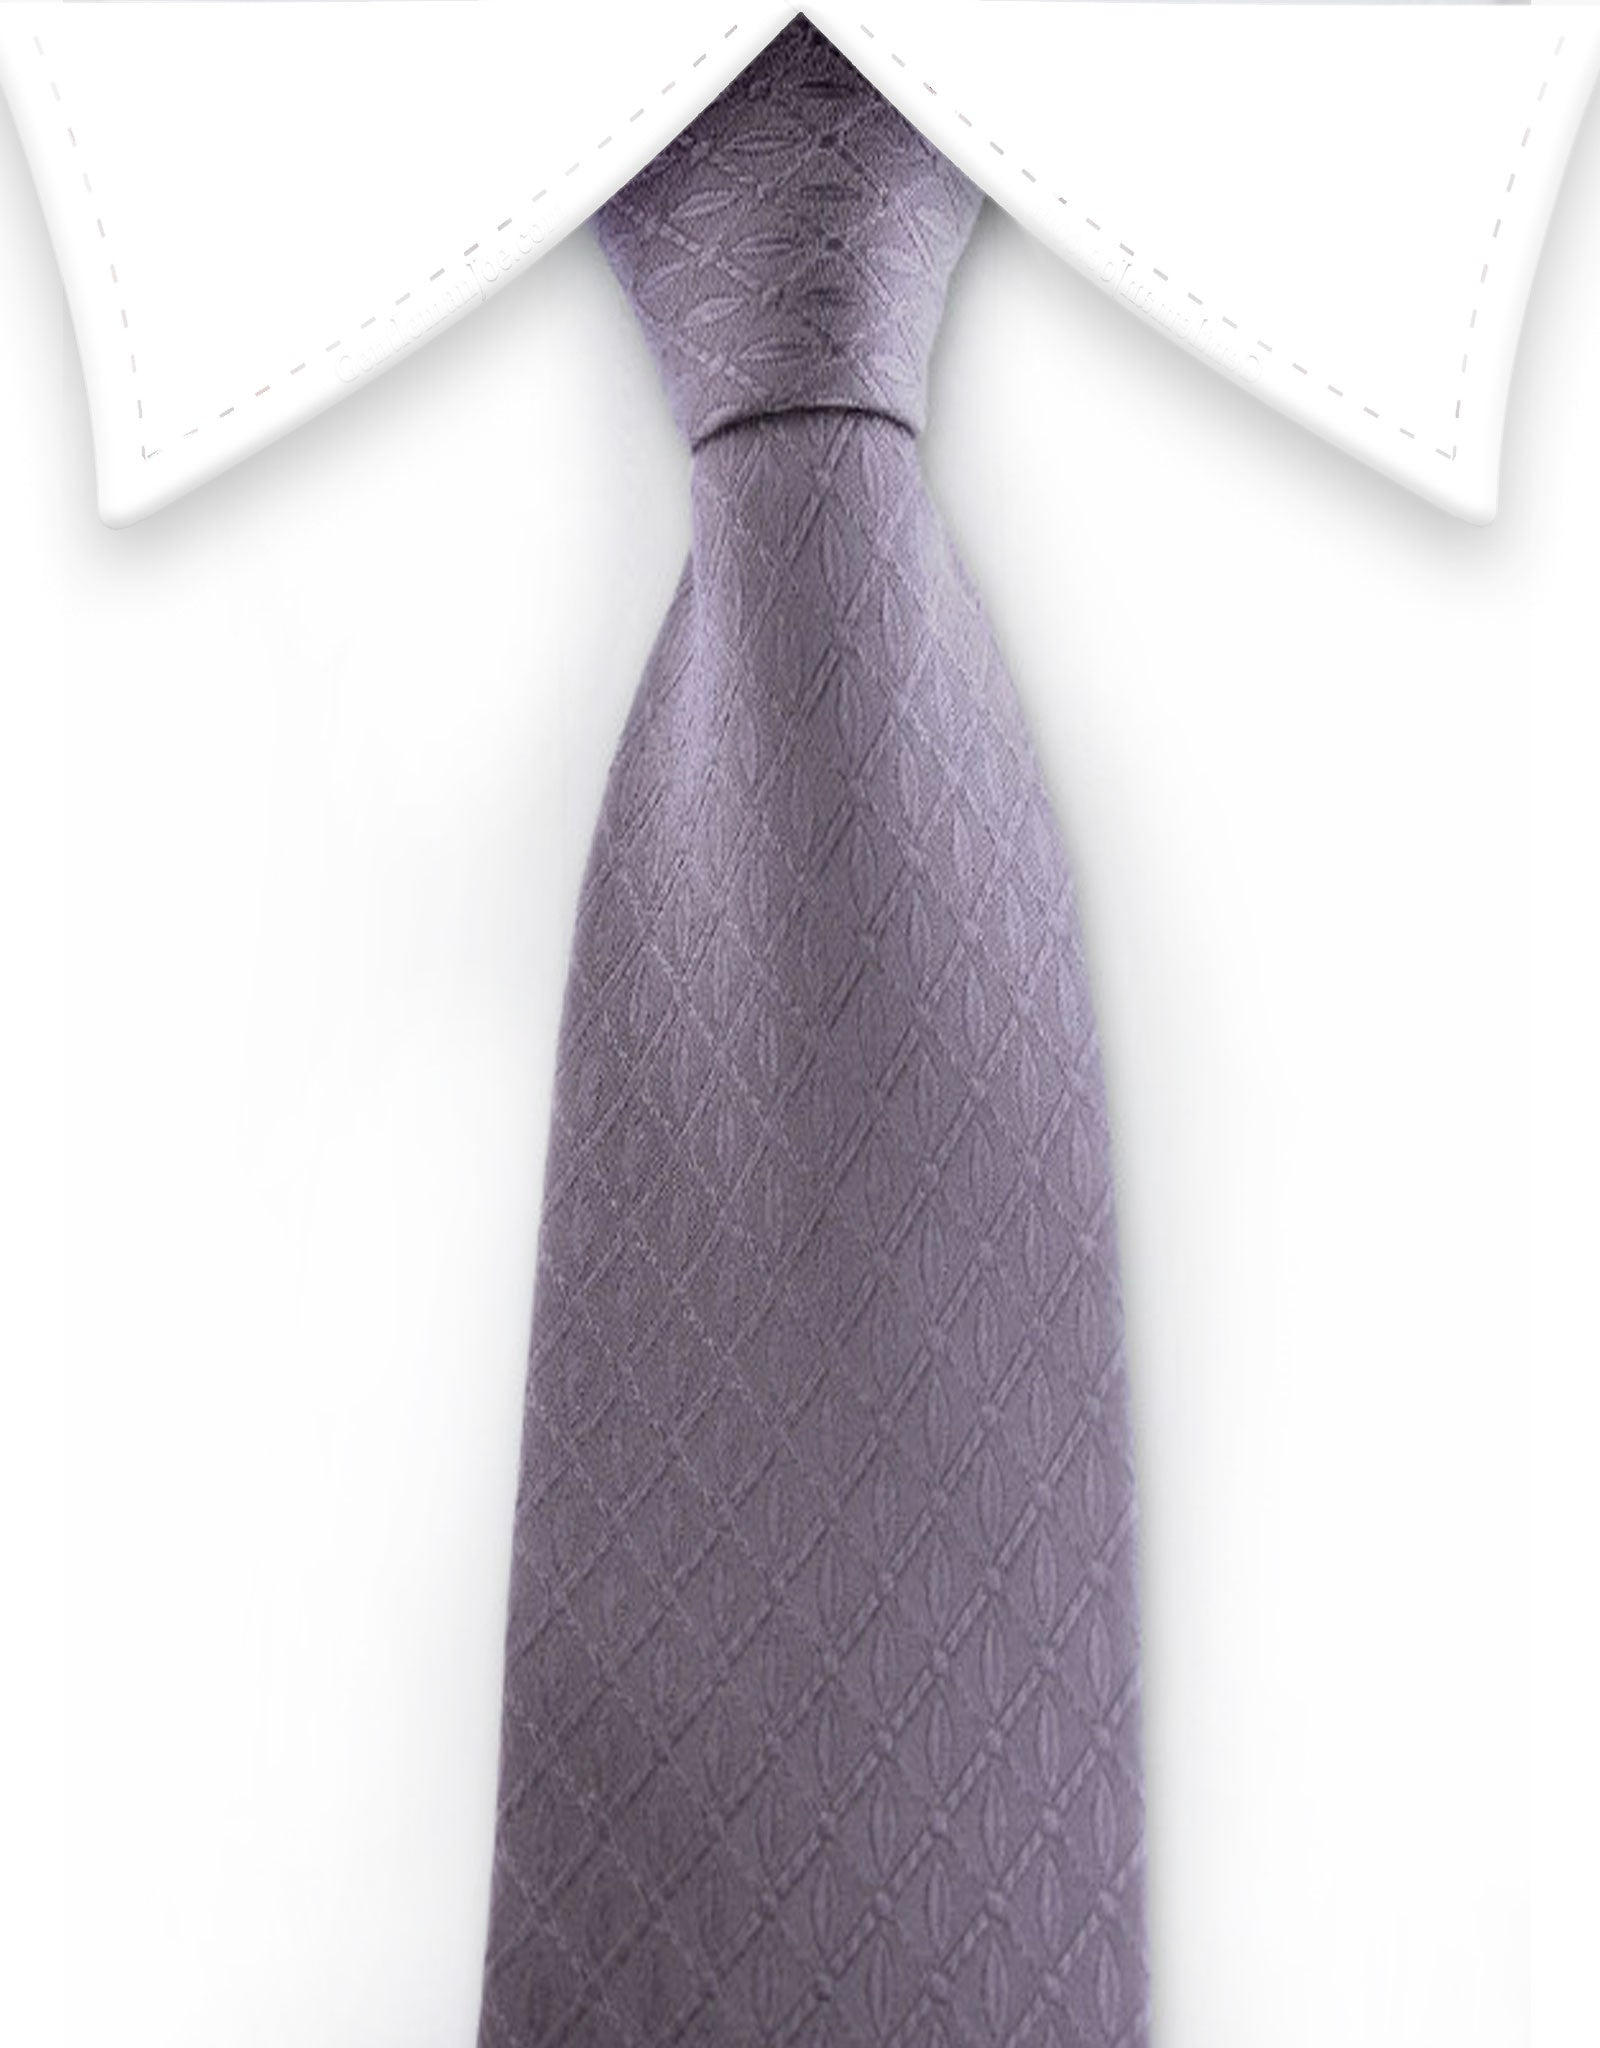 Charcoal gray teen tie